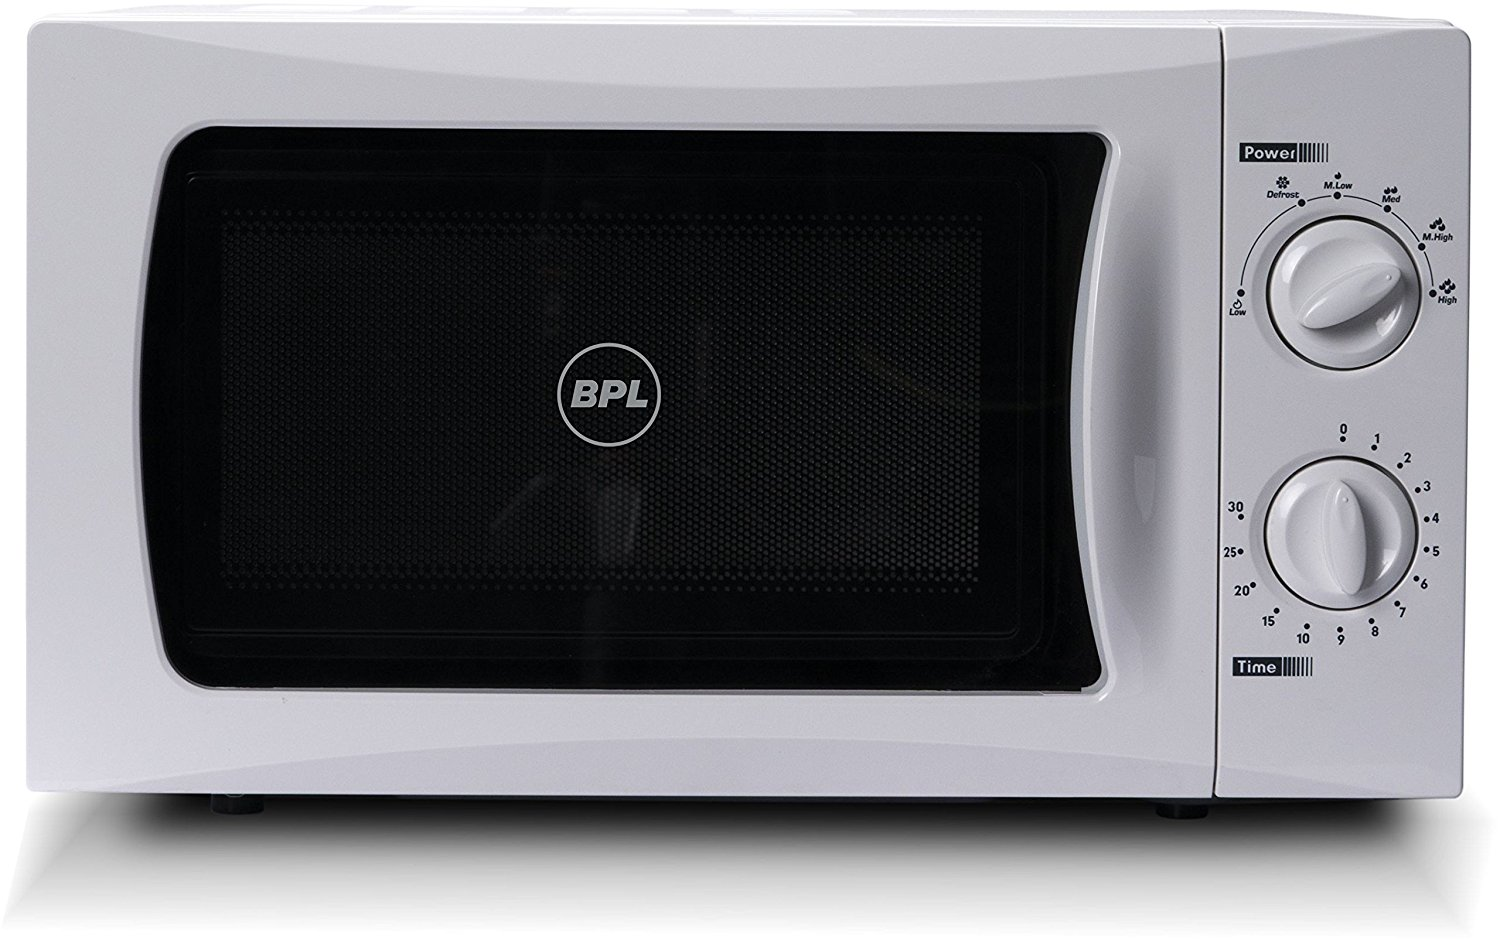 BPL 20 L Solo Microwave Oven @ Rs.2890 After Rs.500 Cashback